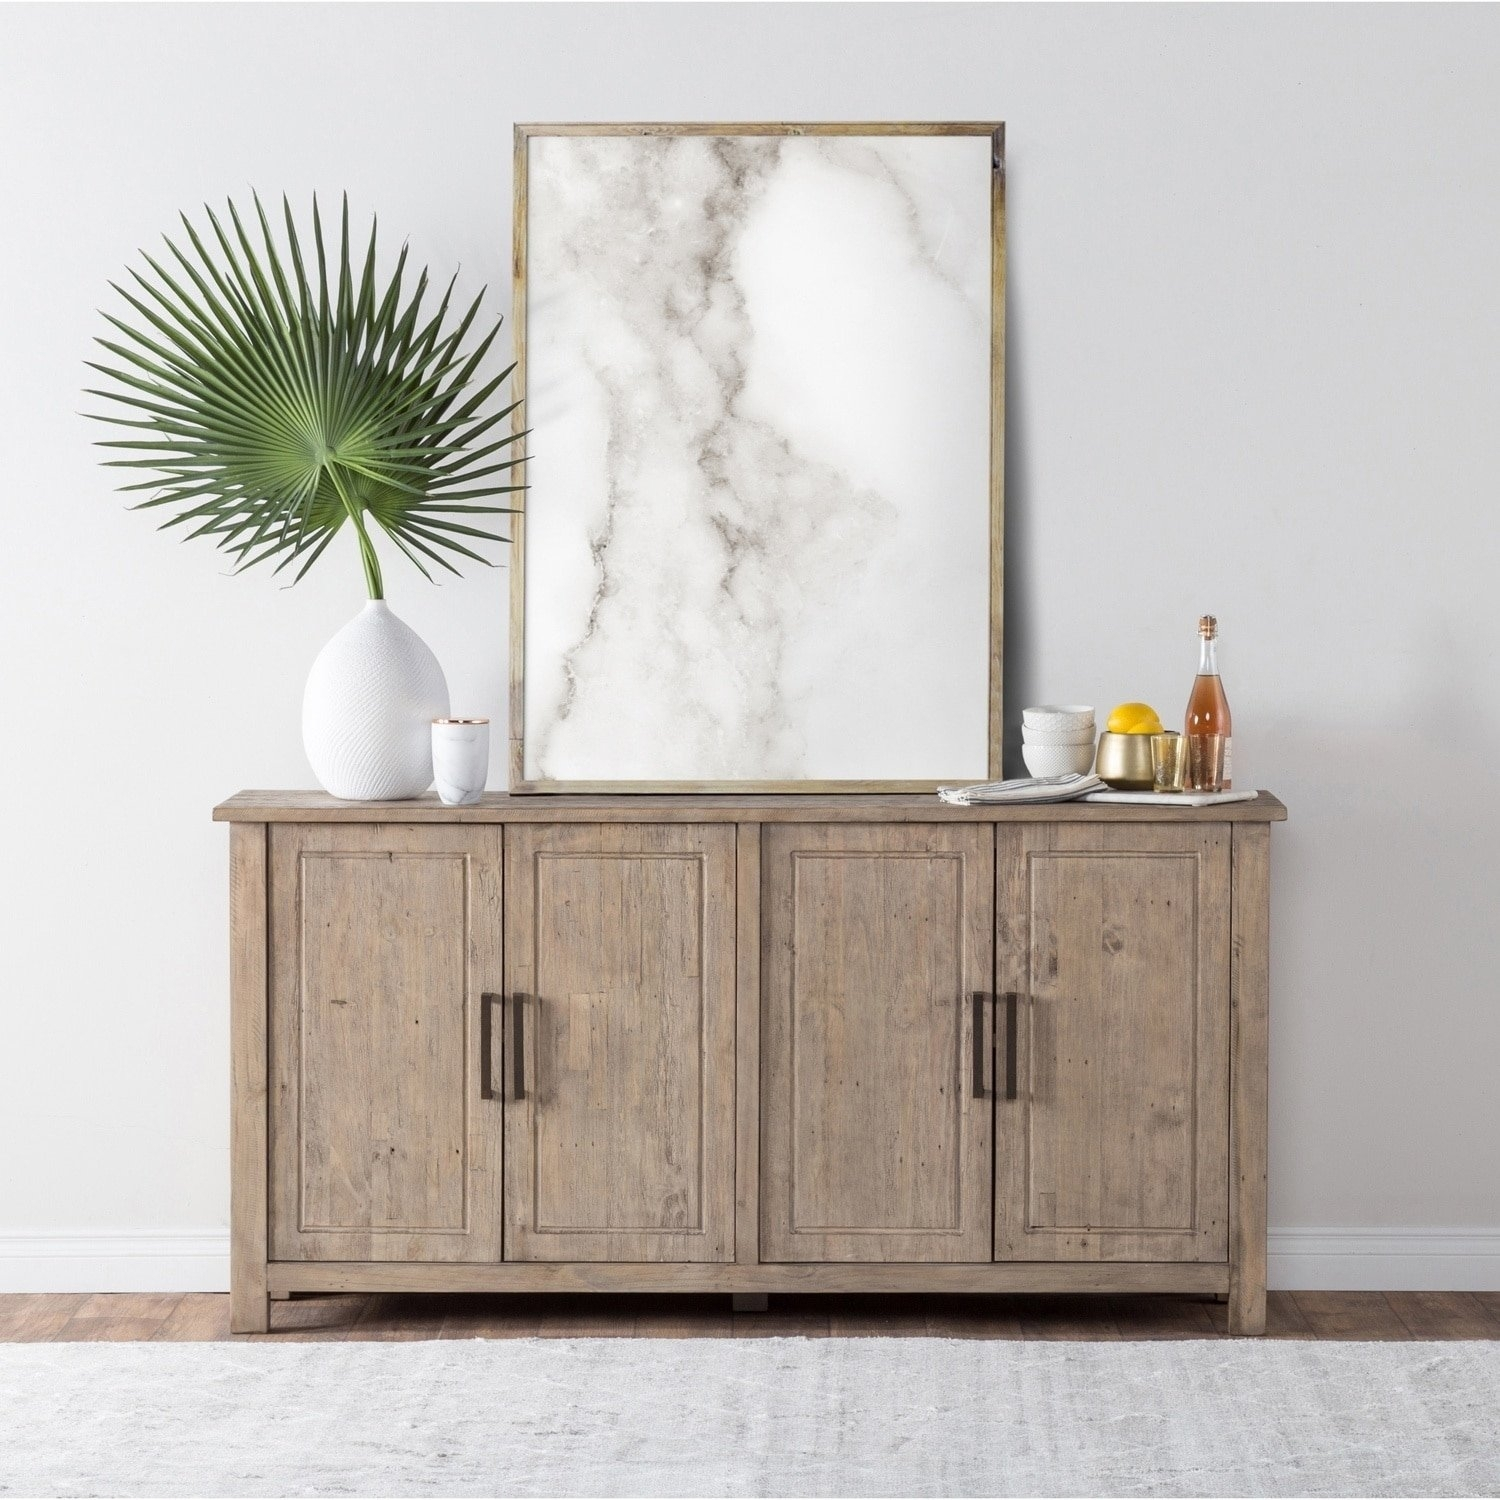 Shop Aires Reclaimed Wood 72 Inch Sideboardkosas Home – Free Pertaining To Most Current Reclaimed Pine & Iron 72 Inch Sideboards (View 7 of 20)